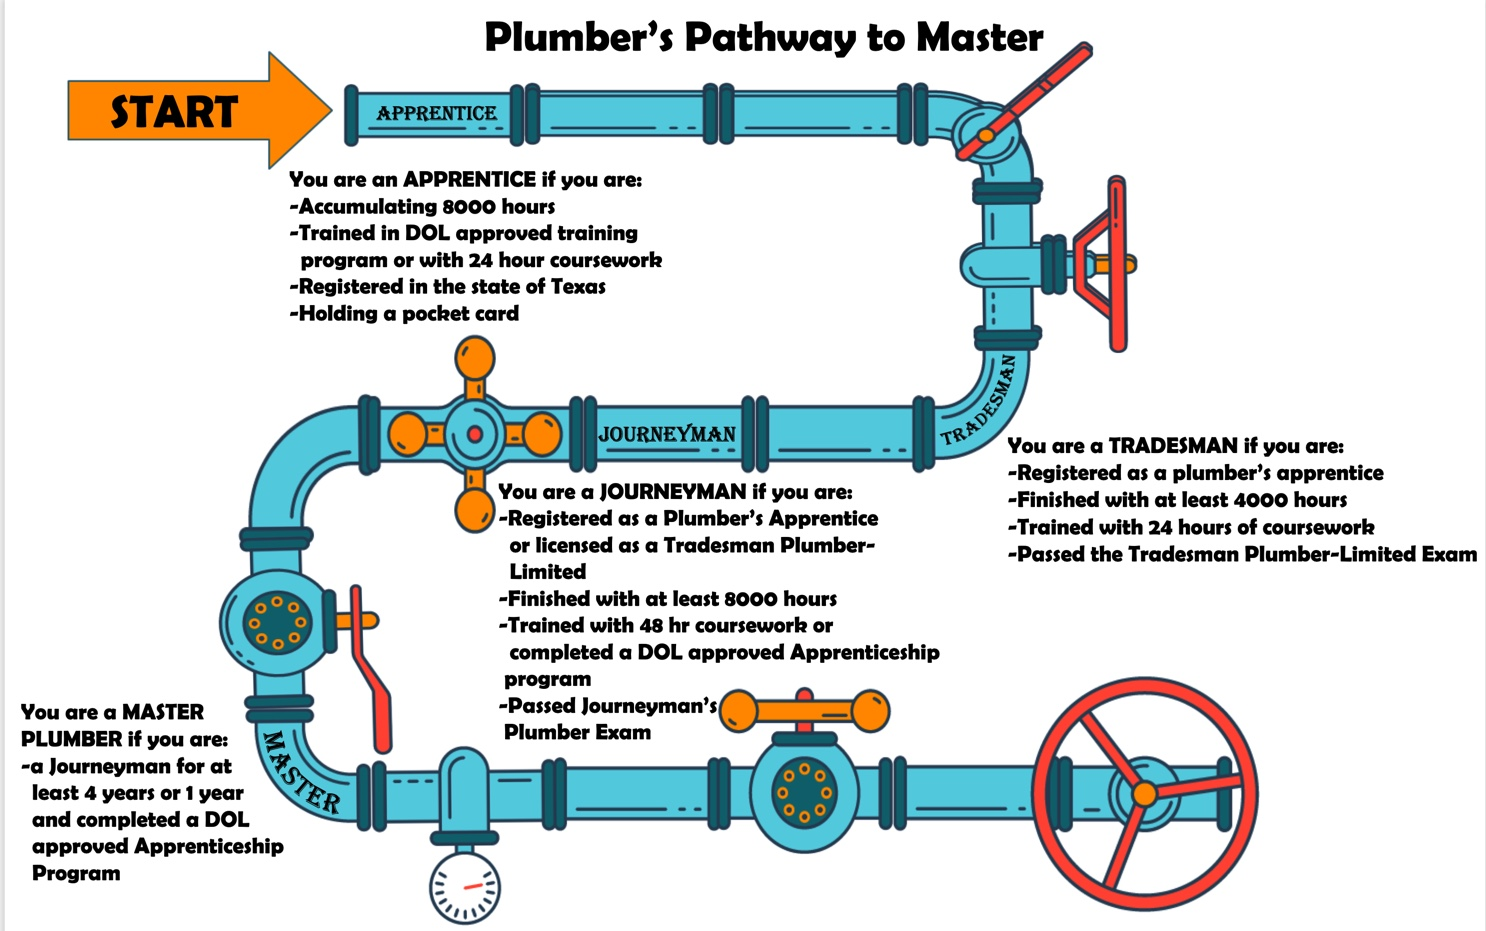 Plumber's Career Pathway Explained -